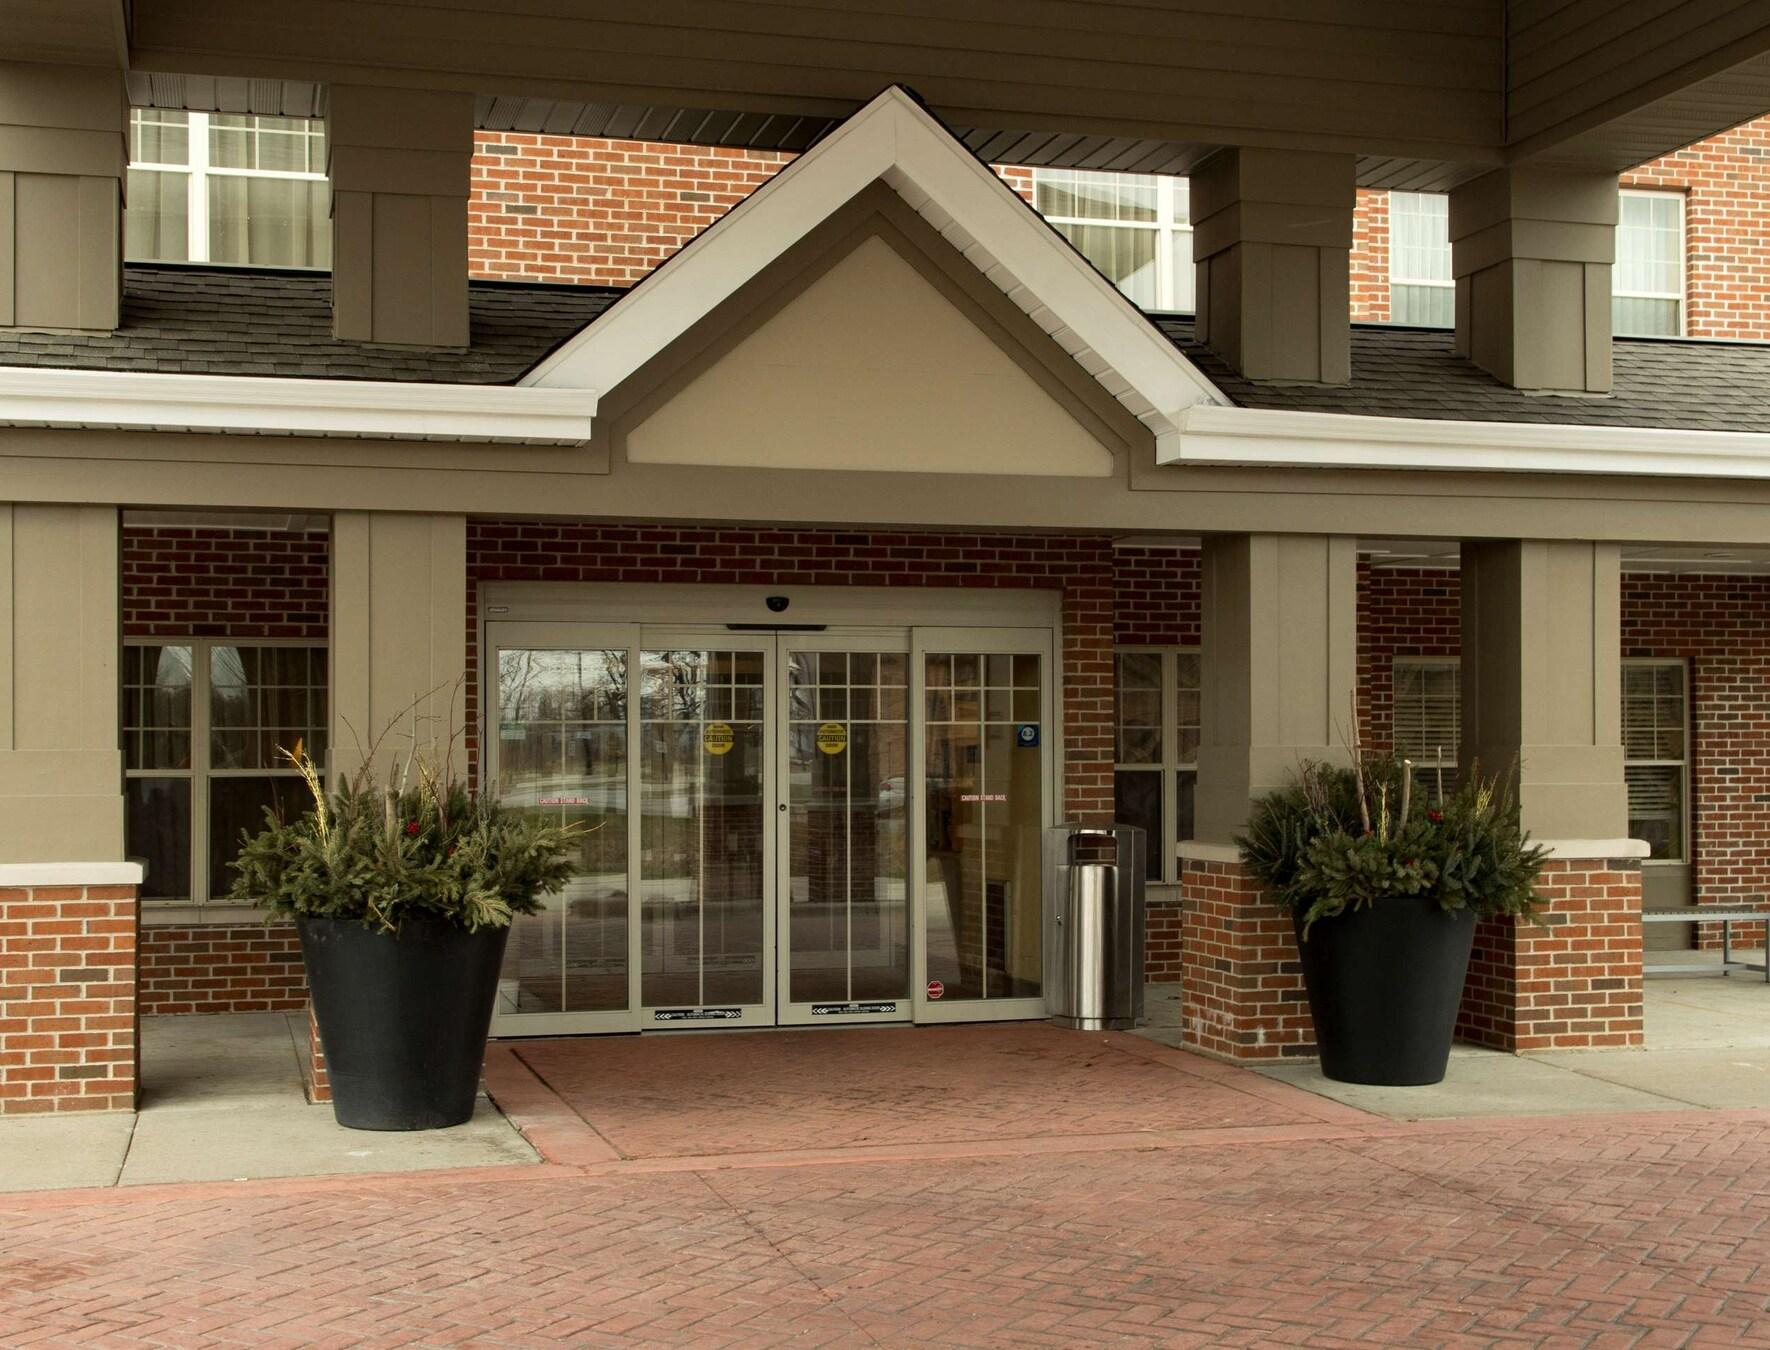 Country Inn & Suites by Radisson, Green Bay E, WI